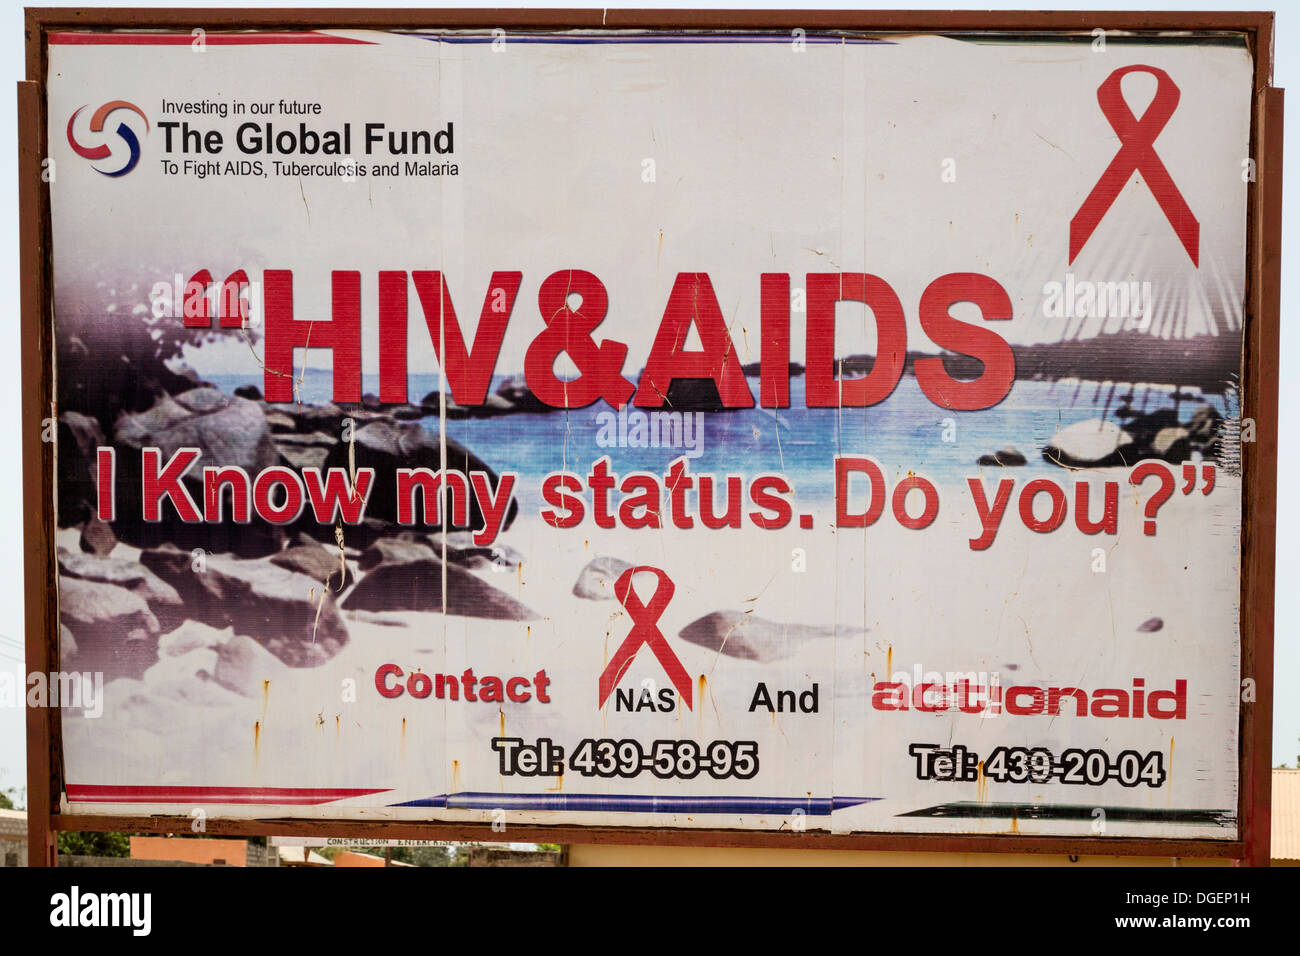 Public Health Education Campaign; HIV-AIDS Awareness ...